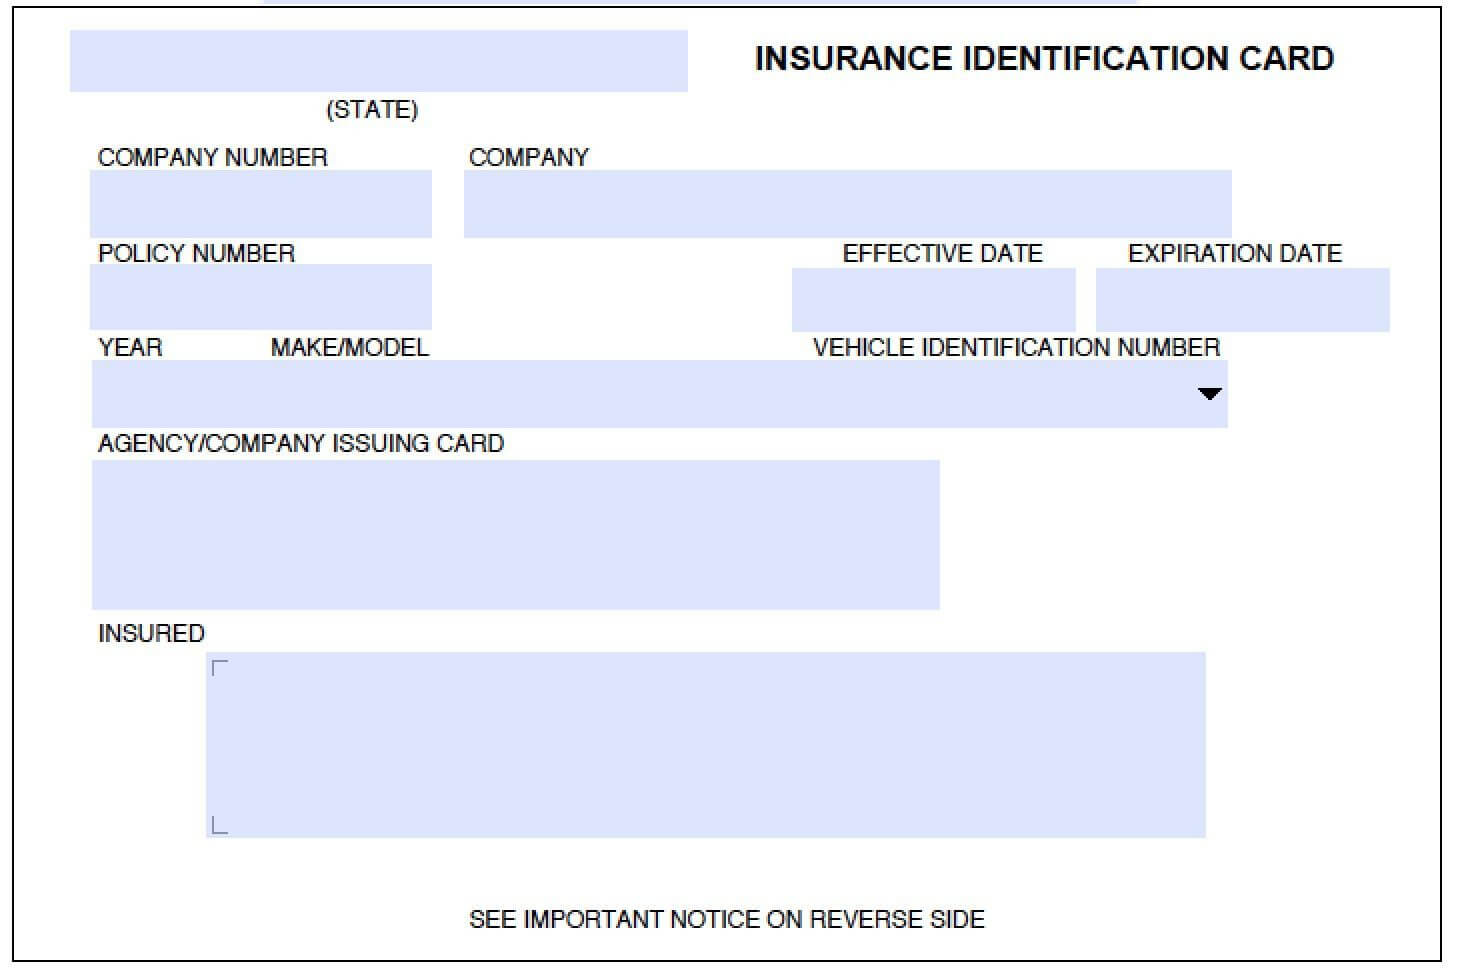 Download (Pdf) | Card Templates Free, Car Insurance In Auto Insurance Id Card Template